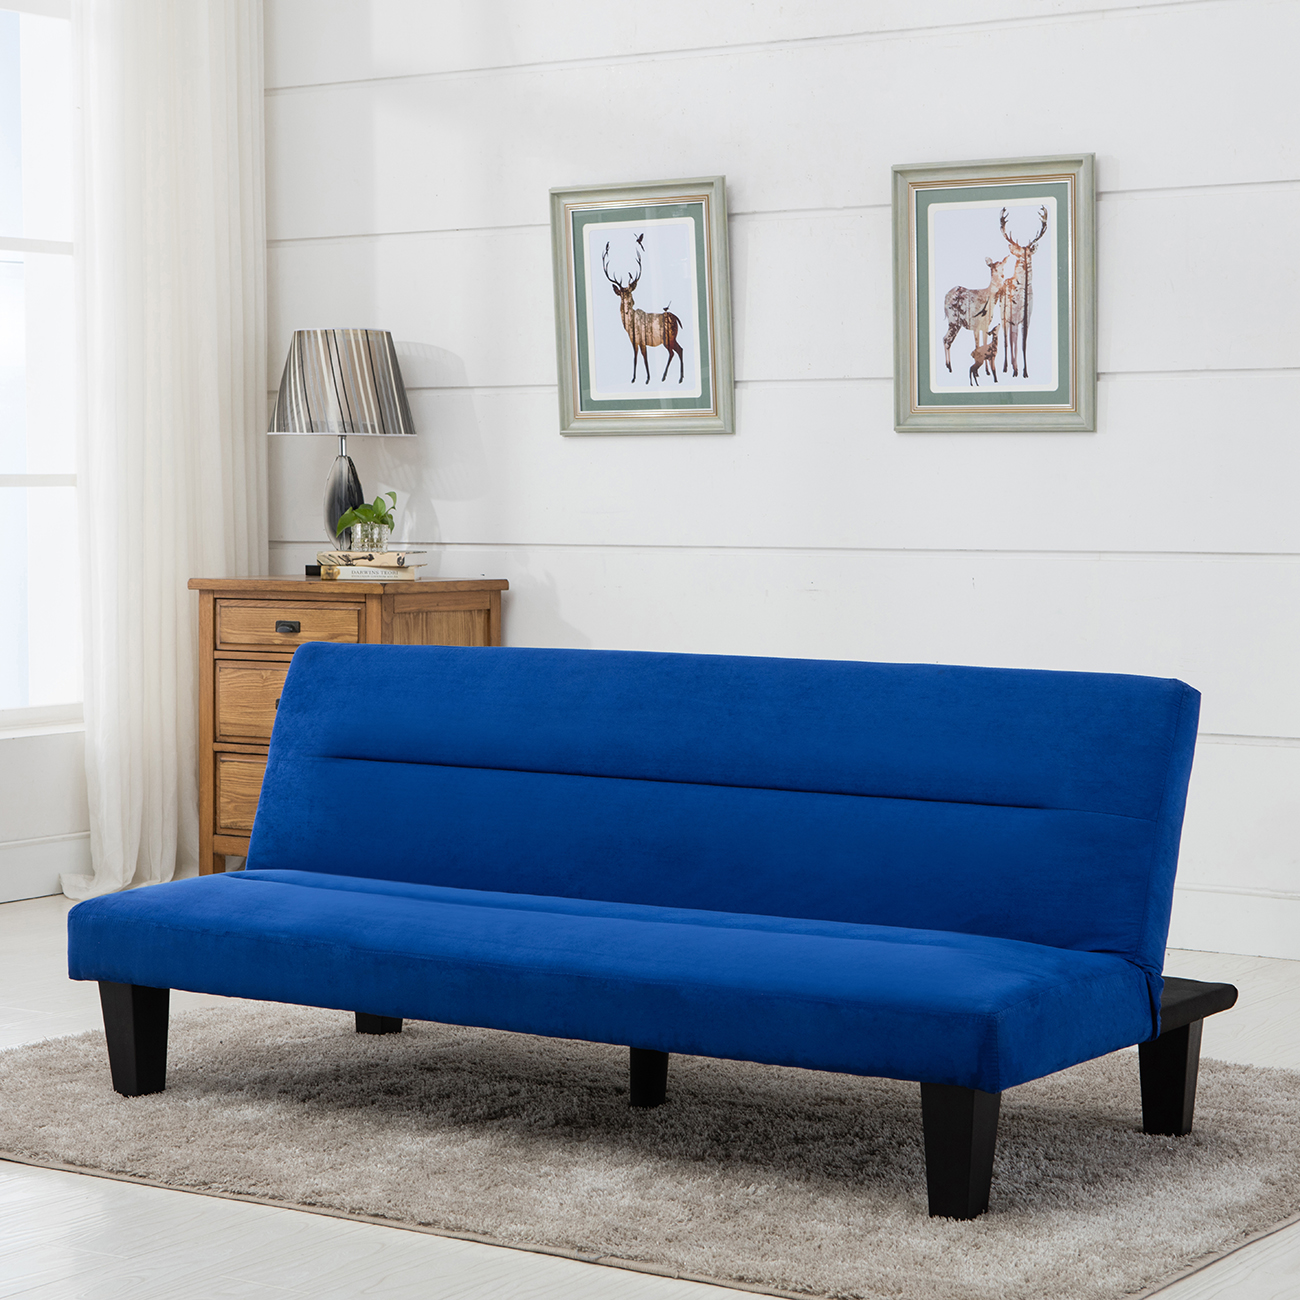 Belleze Convertible Sofa Adjustable Futon Bed Legs And Upholstered In Rich  Blue Microfiber   Walmart.com